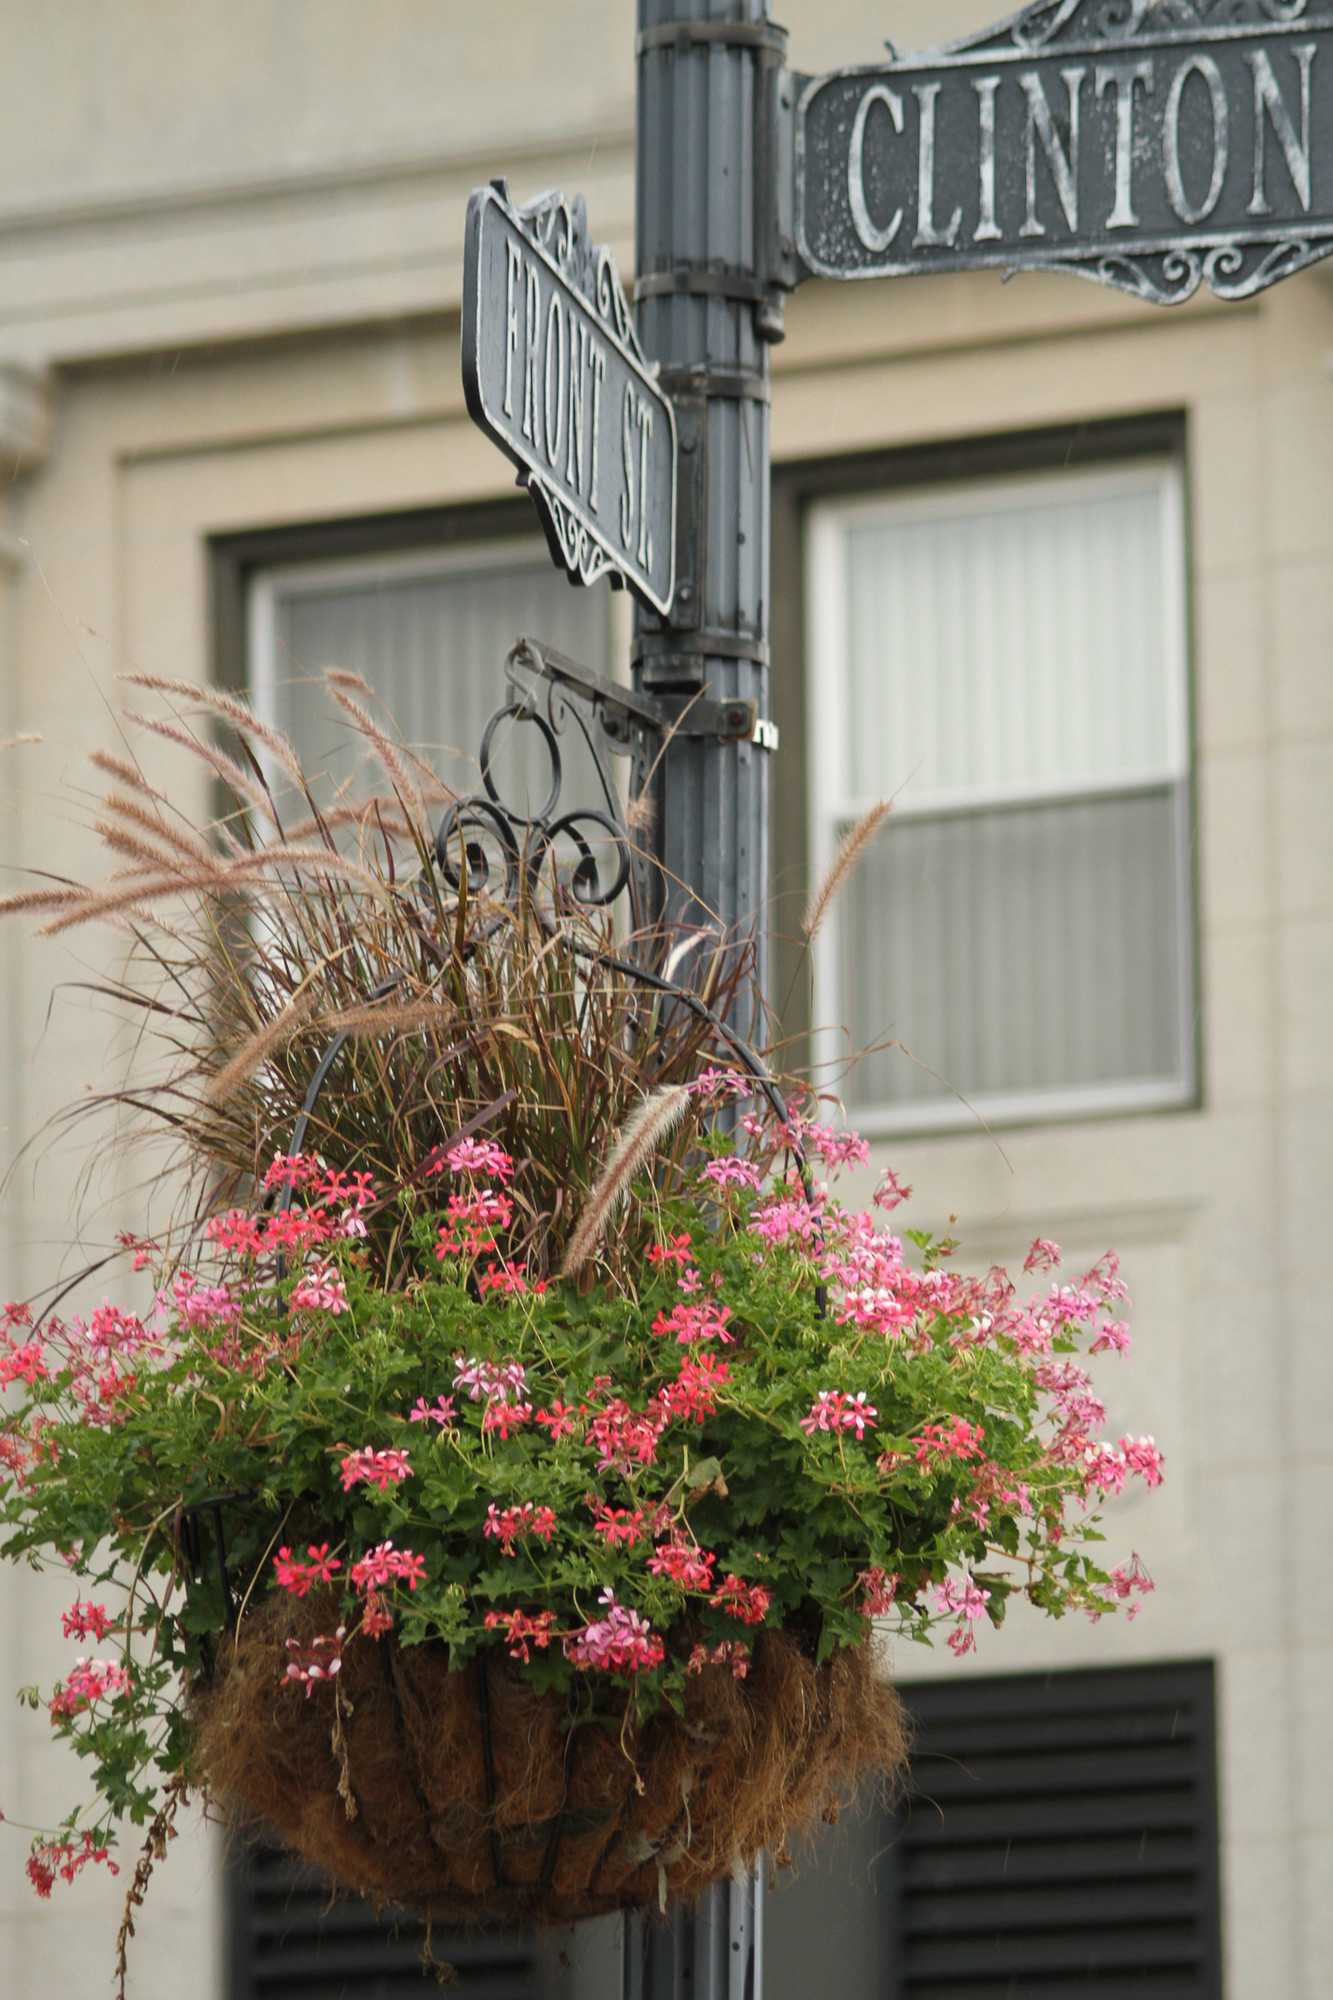 The chamber paid to have 47 flowering baskets hung on the streets in the downtown area.